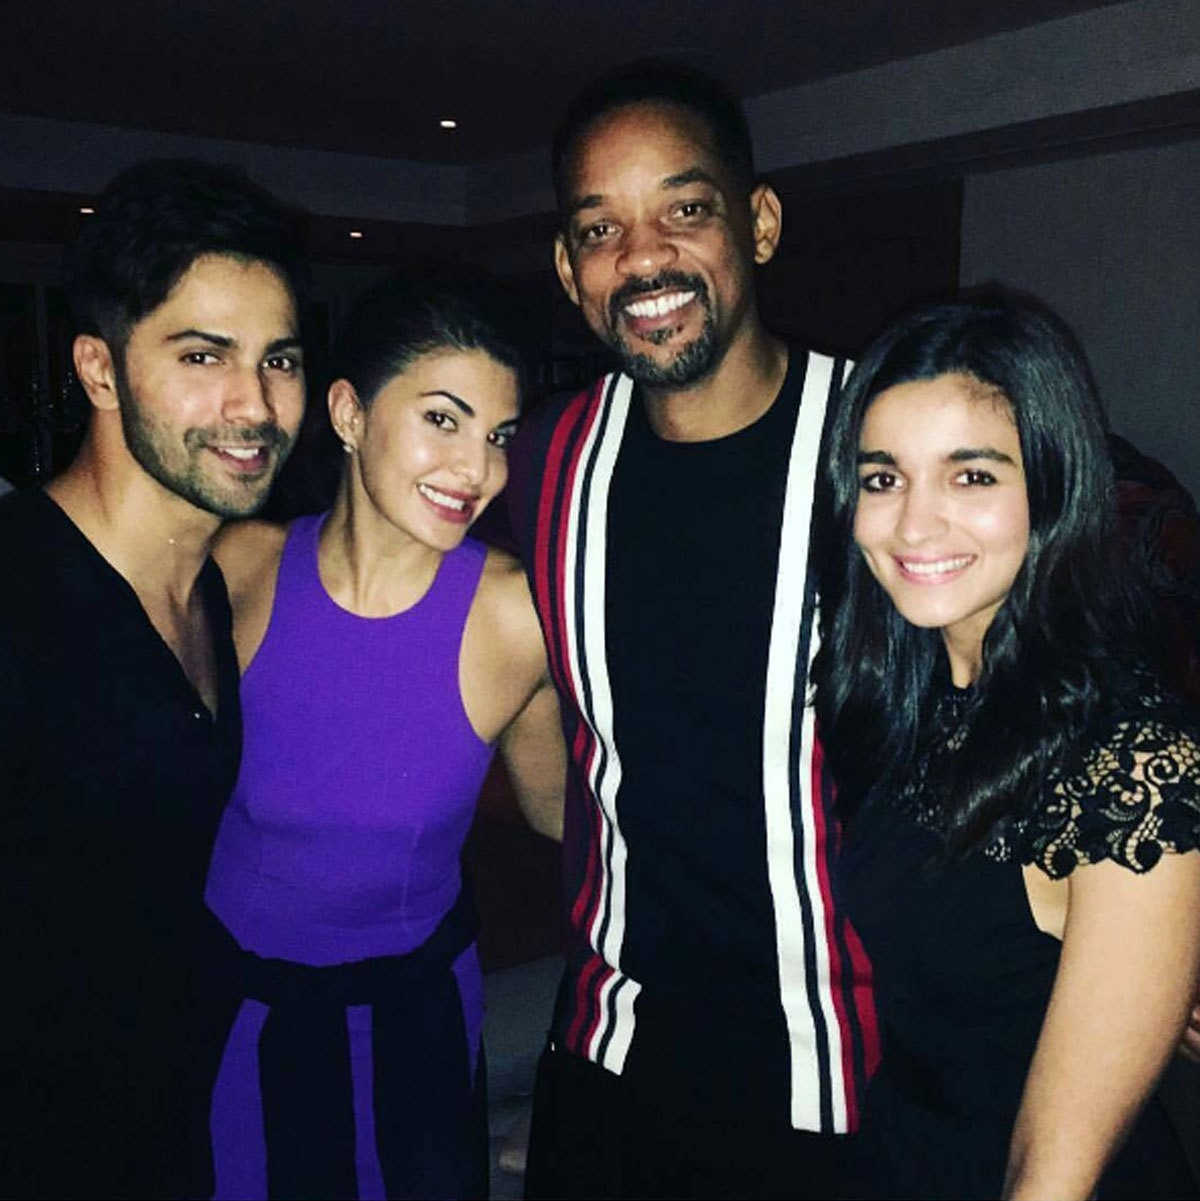 Will Smith with Varun Dhawan, Jacqueline Fernandez and Alia Bhatt at Akshay's success party. - Instagram